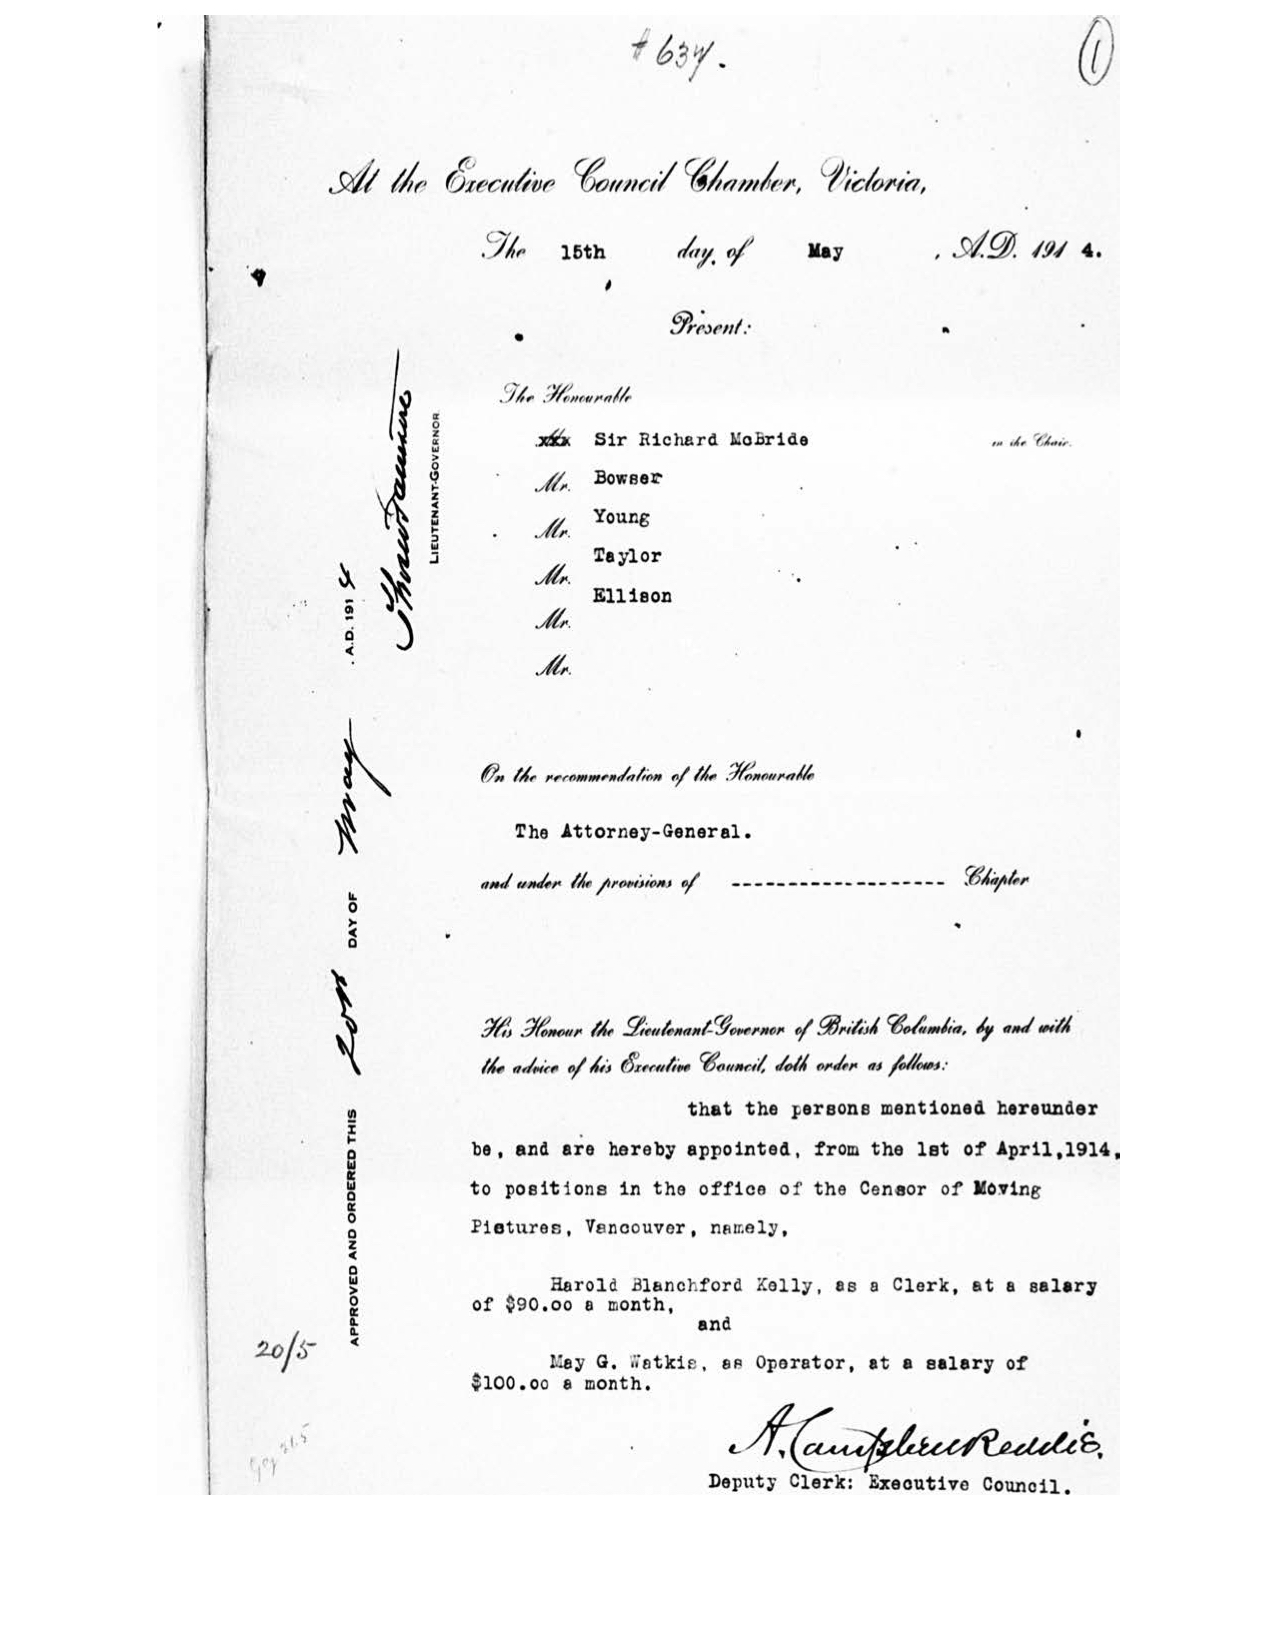 First page of the Order in Council appointing May Watkis to the position of projectionist (operator) in the office of the Censor of Moving Pictures